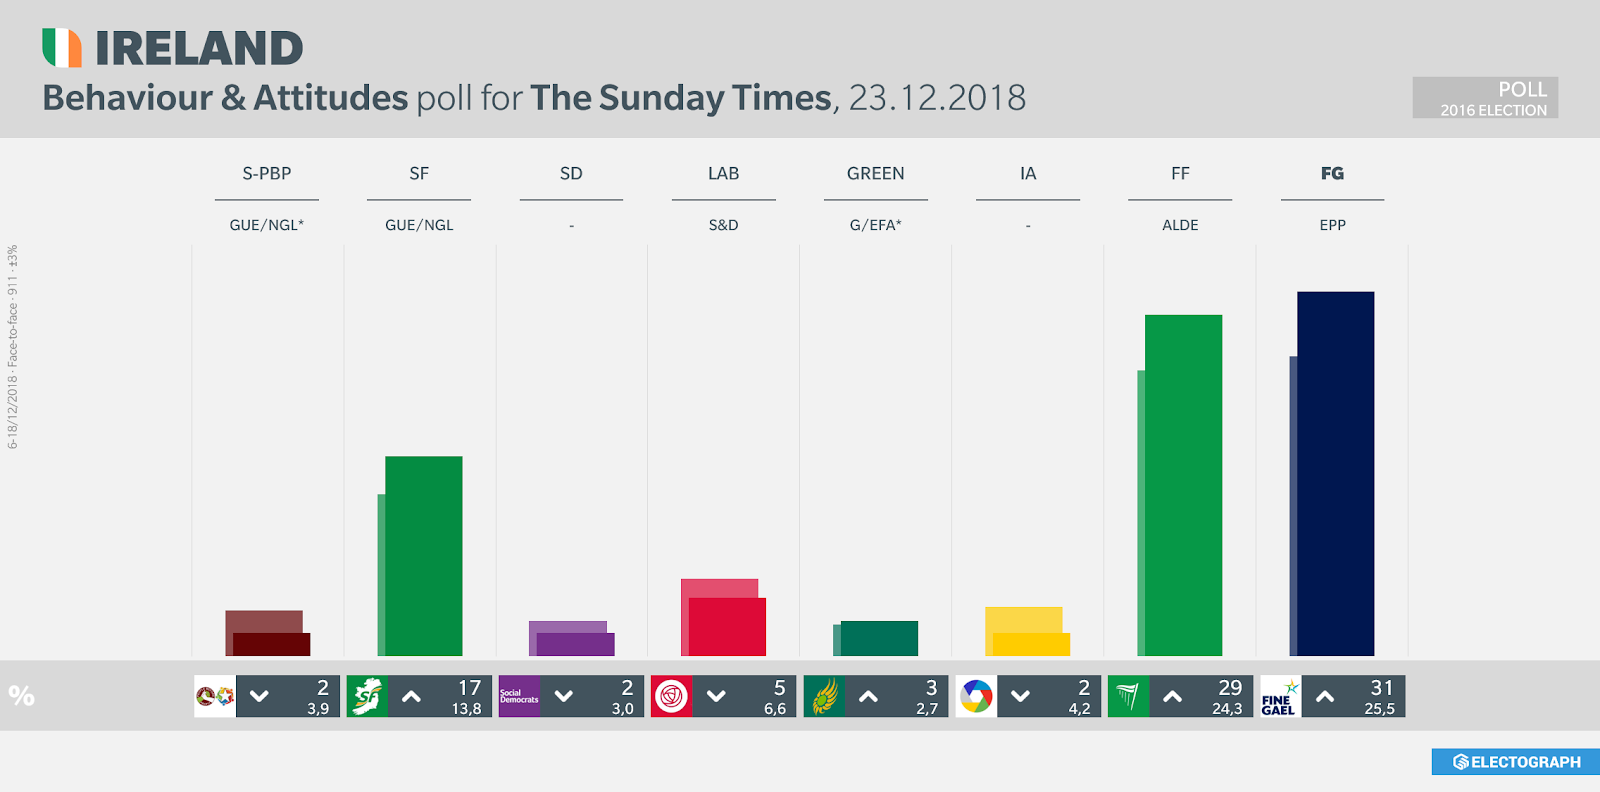 IRELAND: Behaviour & Attitudes poll chart for The Sunday Times, 23 December 2018